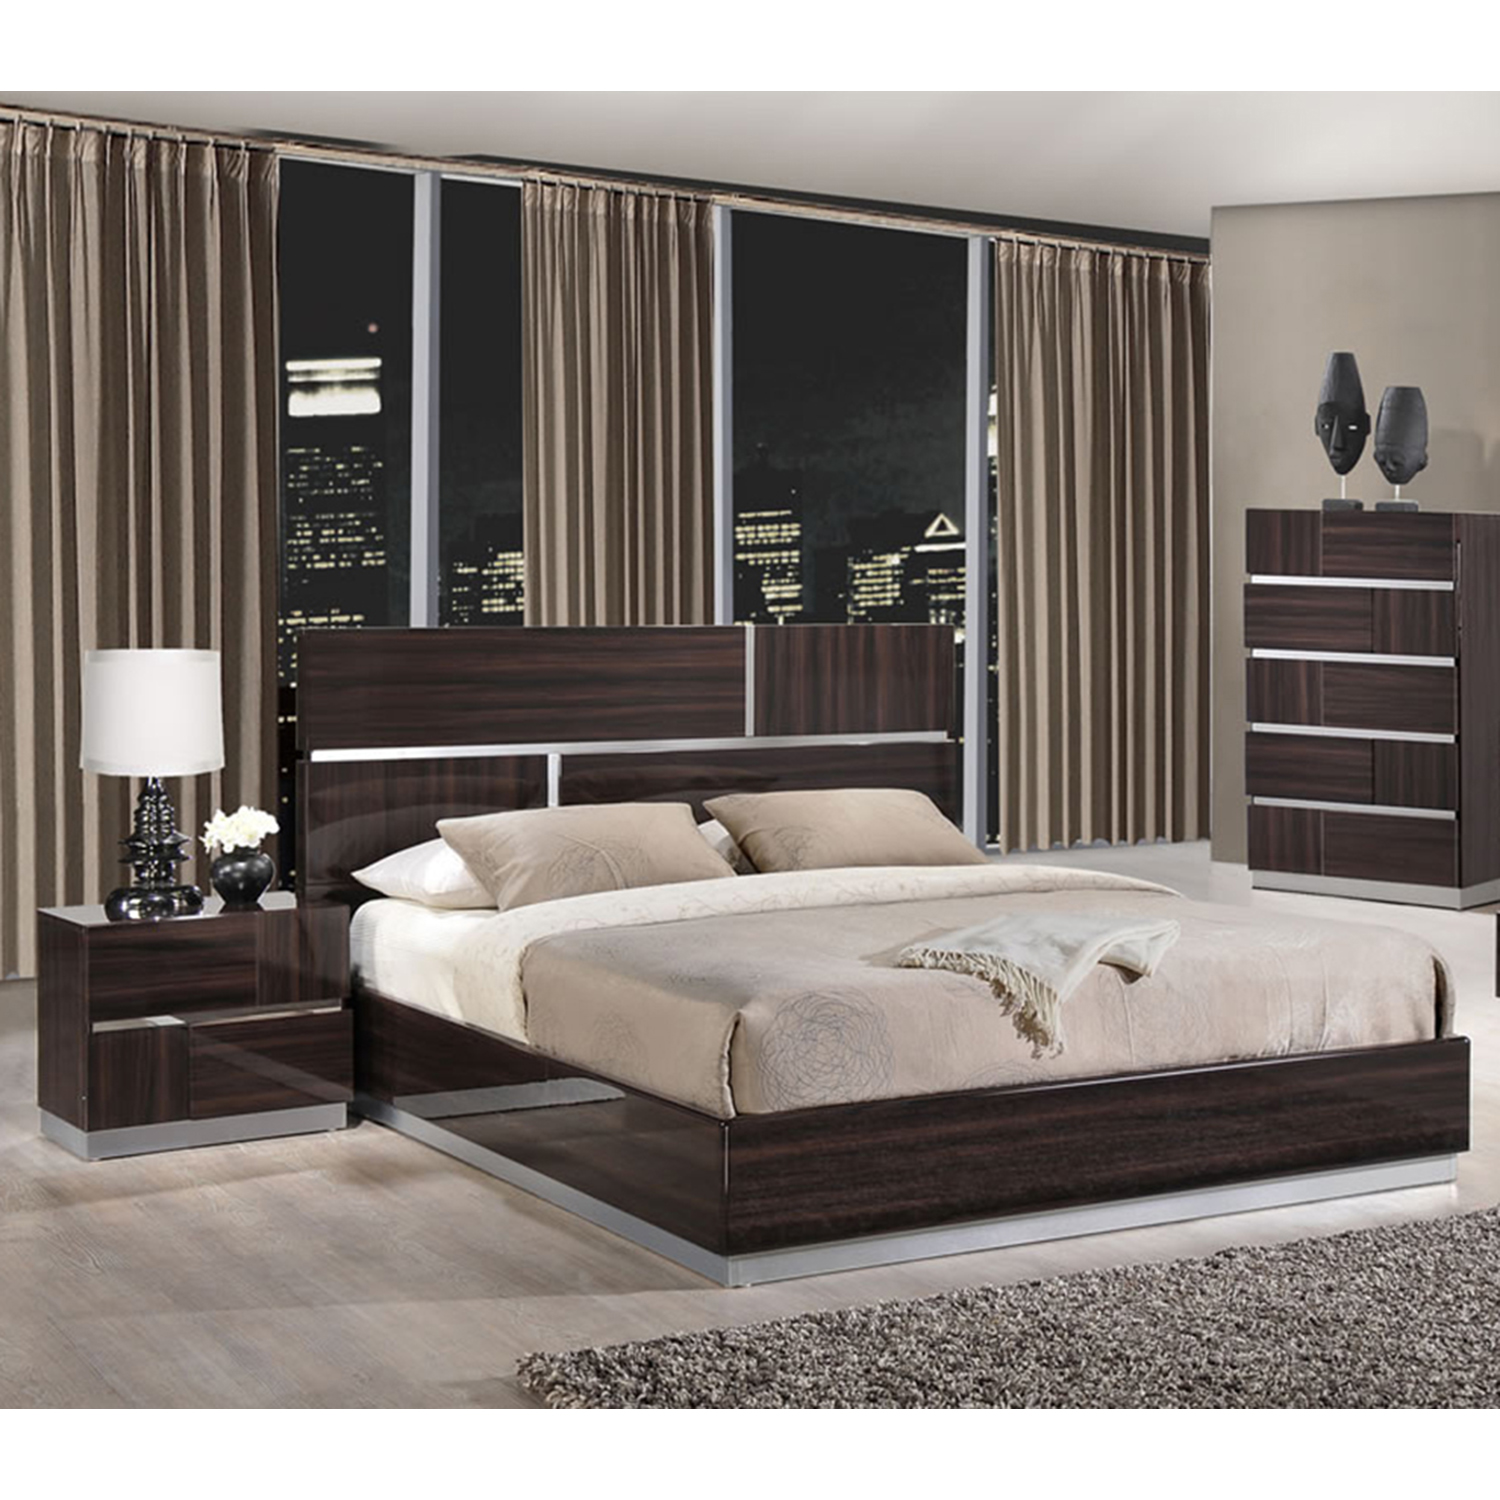 Tribeca Bedroom Set in High Gloss Brown Wood Grain - GLO-TRIBECA-110-BED-SET